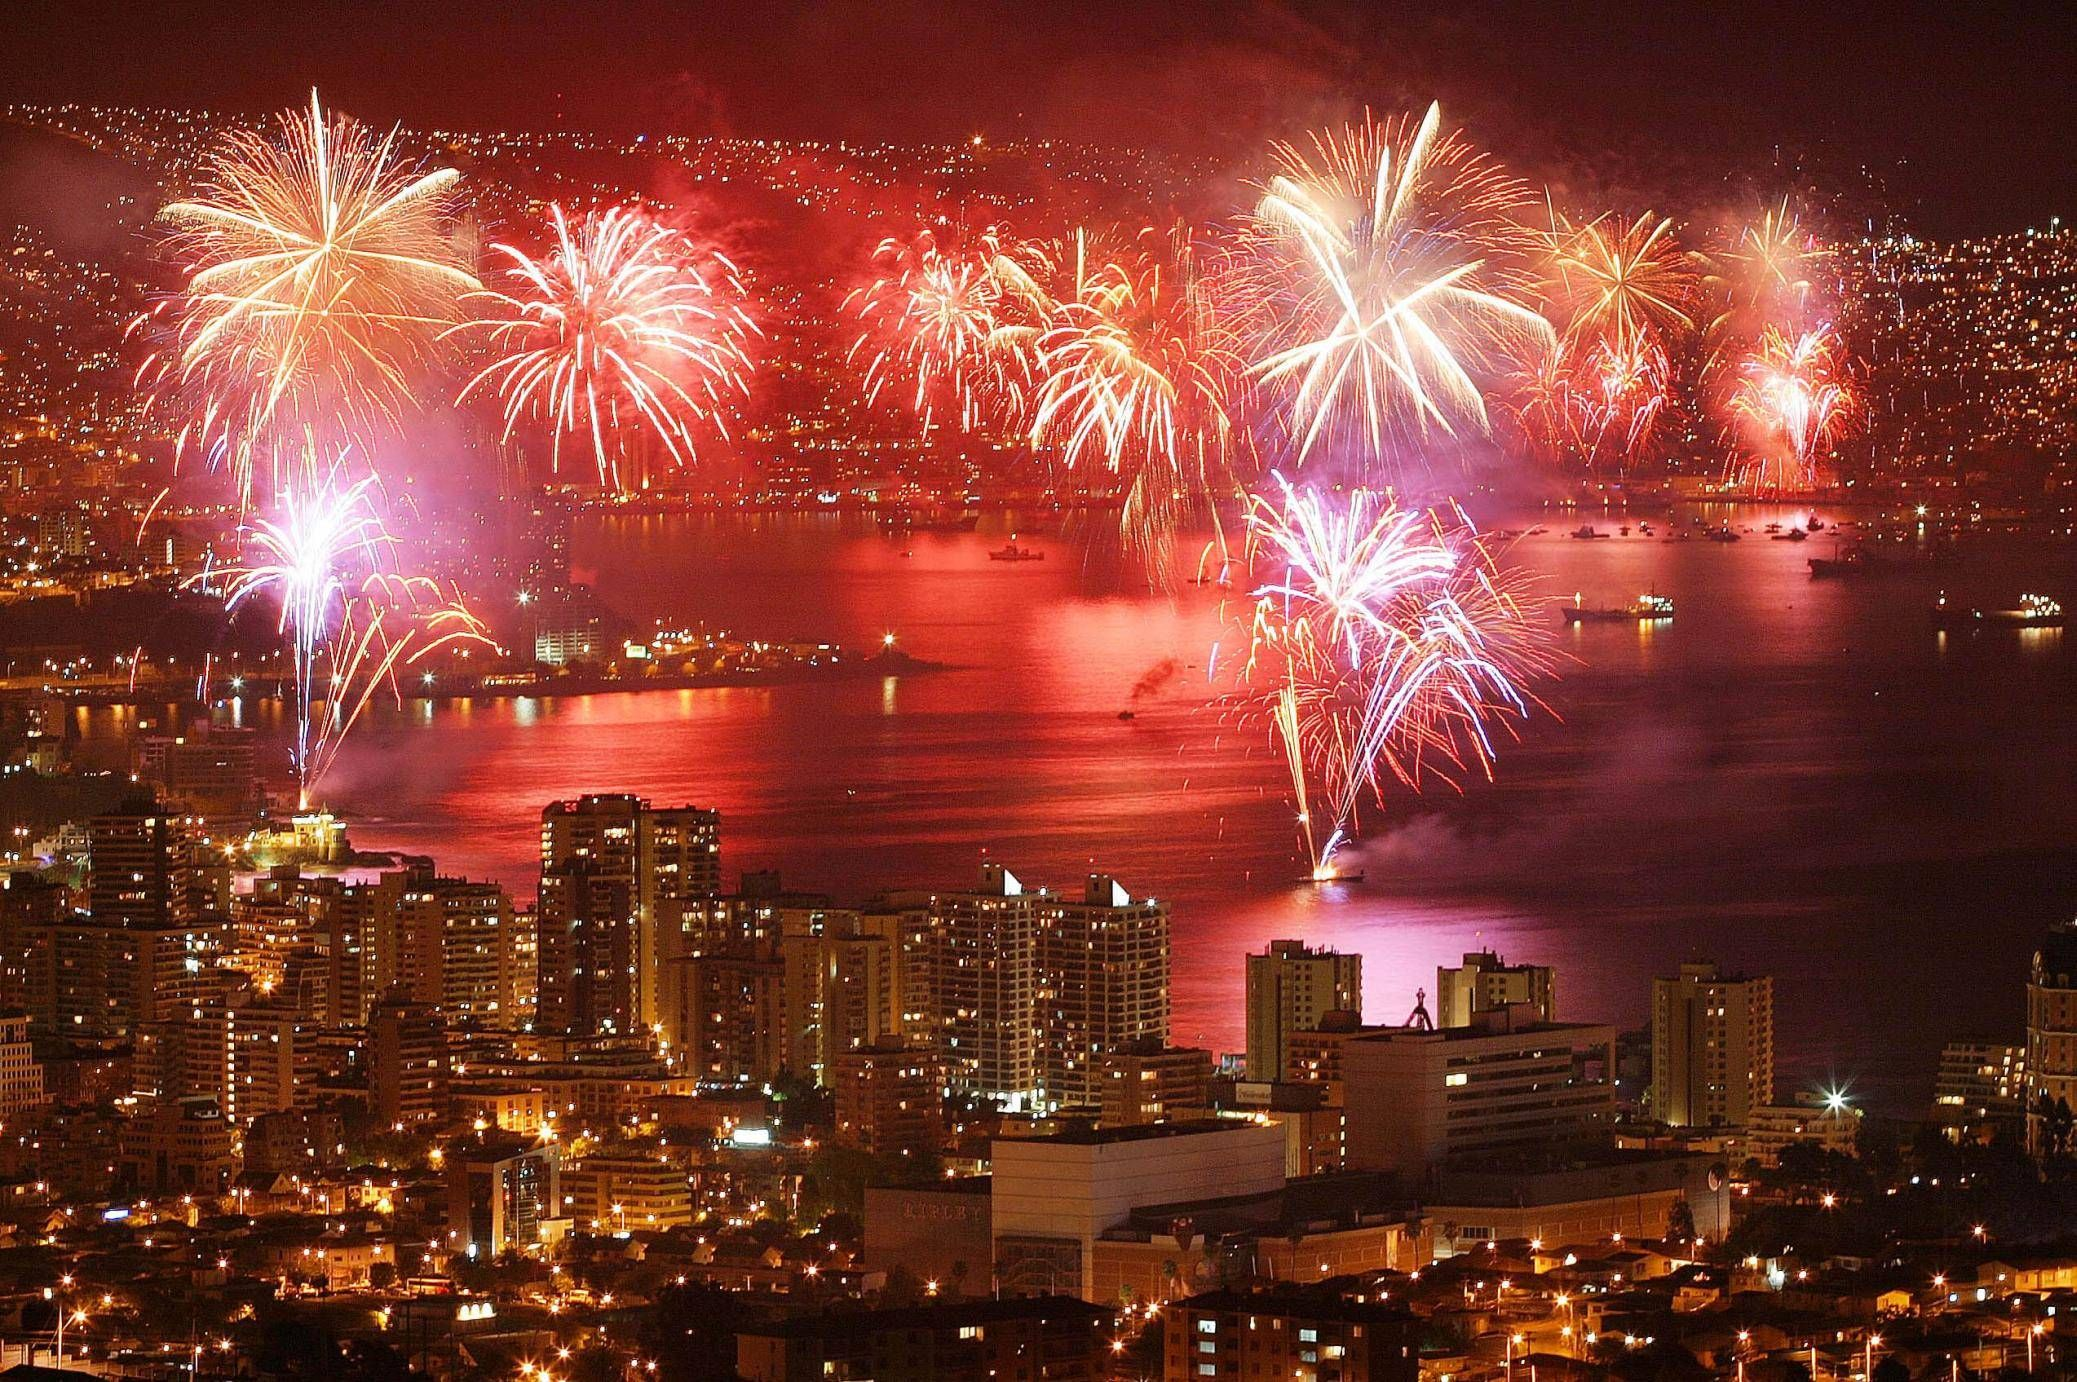 New Years In Vina Concon Y Valparaiso Best Fireworks In South America It Almost New Year S Eve Around The World Valparaiso Chile Festivals Around The World